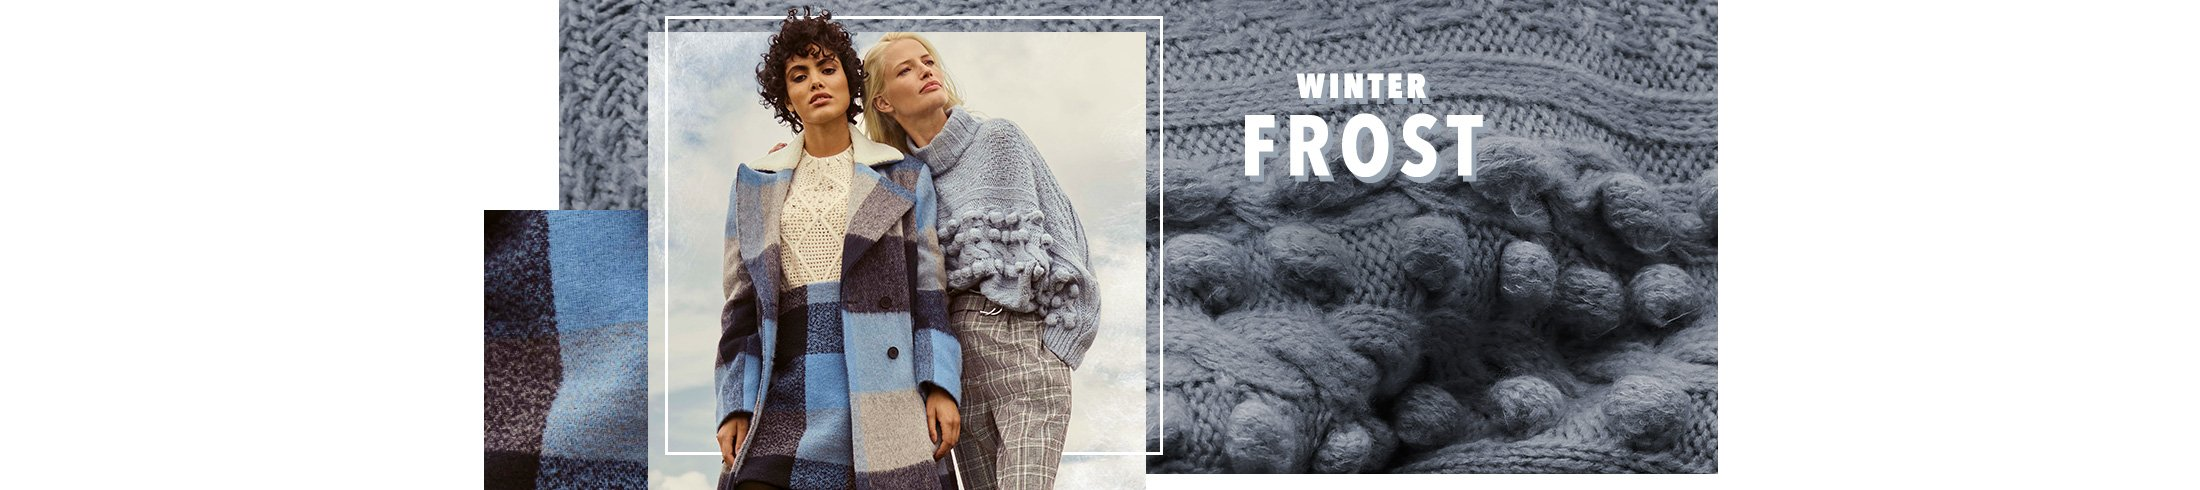 Discover our new Winter Frost clothing collection